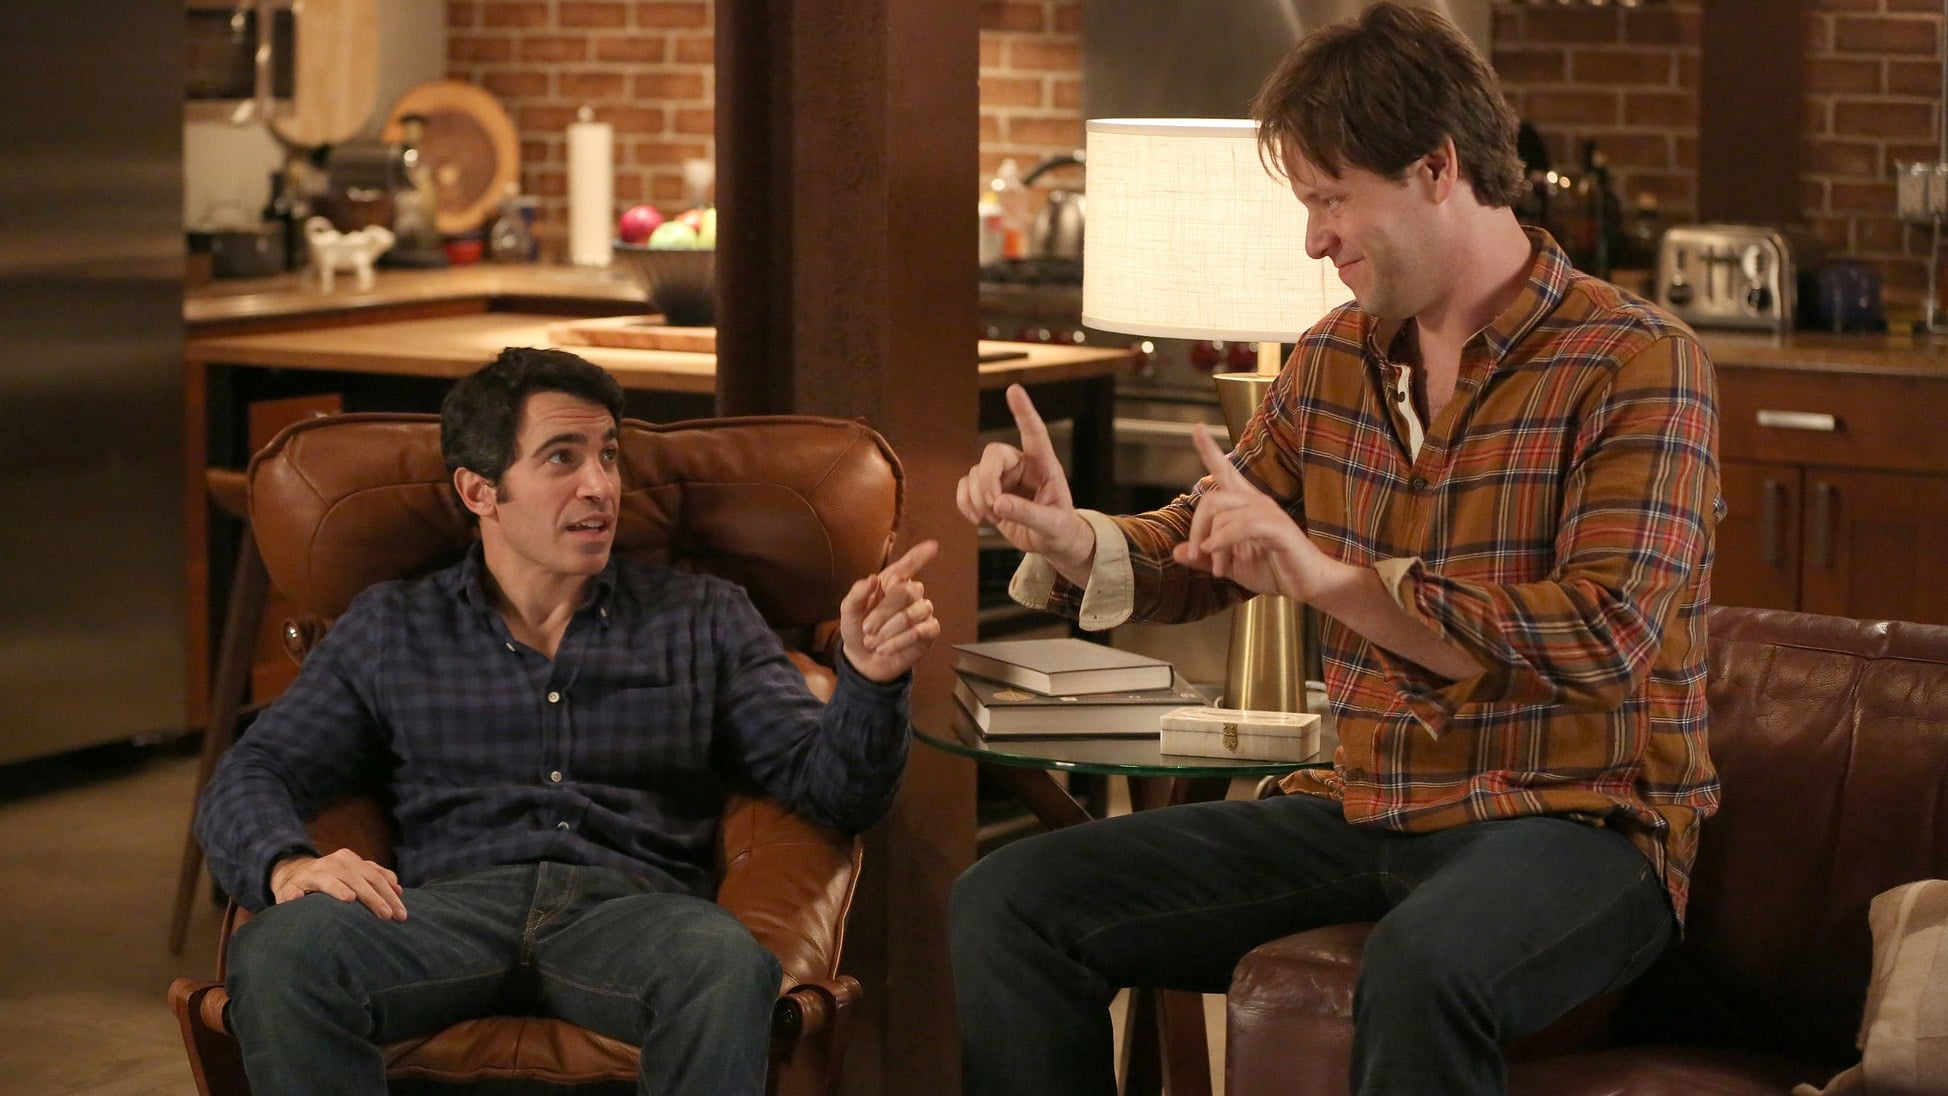 mindy project full episodes Watch the mindy project online: watch full length episodes, video clips, highlights and more.